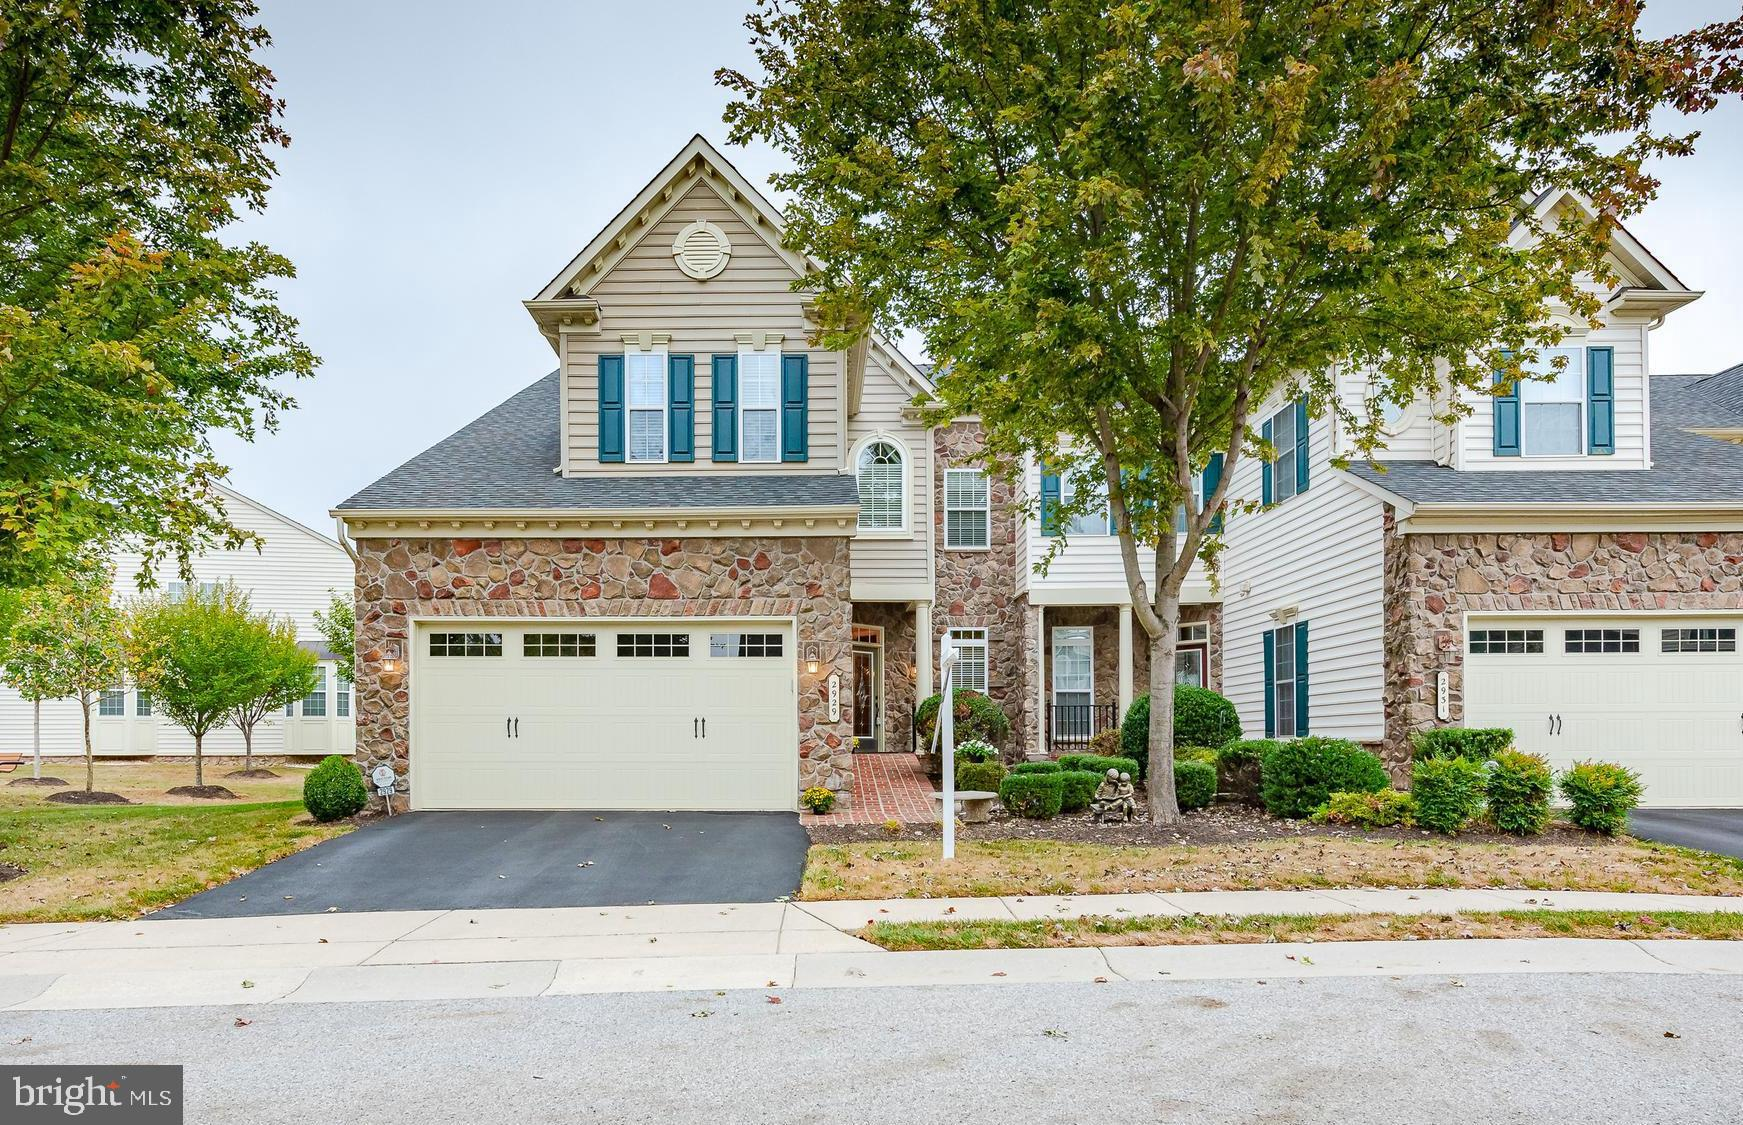 2929 EVENING DEW DRIVE 102, WOODSTOCK, MD 21163